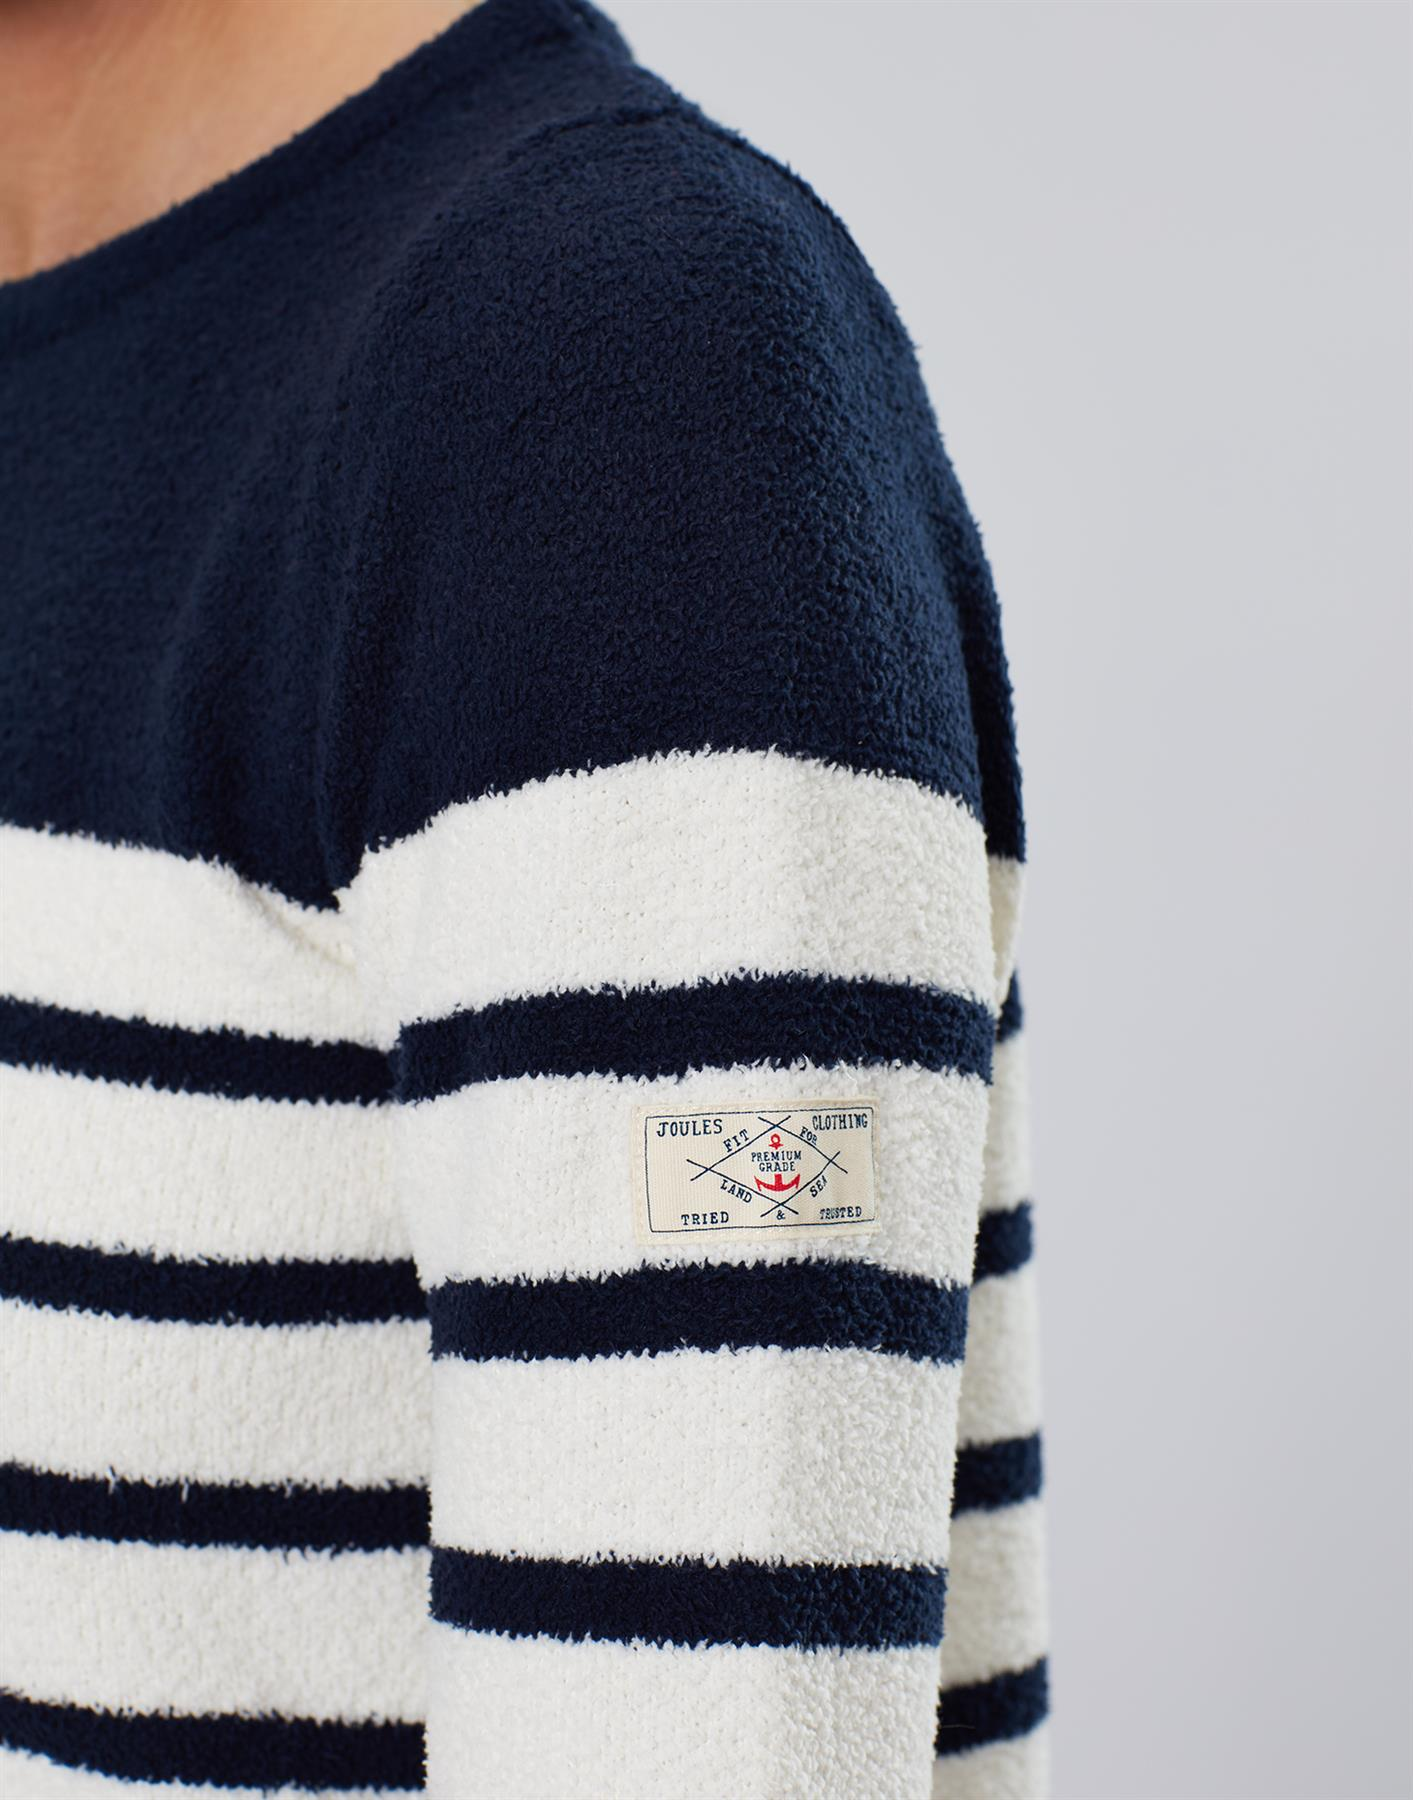 Jersey-De-Chenille-Joules-Para-Mujer-Seaham-Suave-AW19 miniatura 11